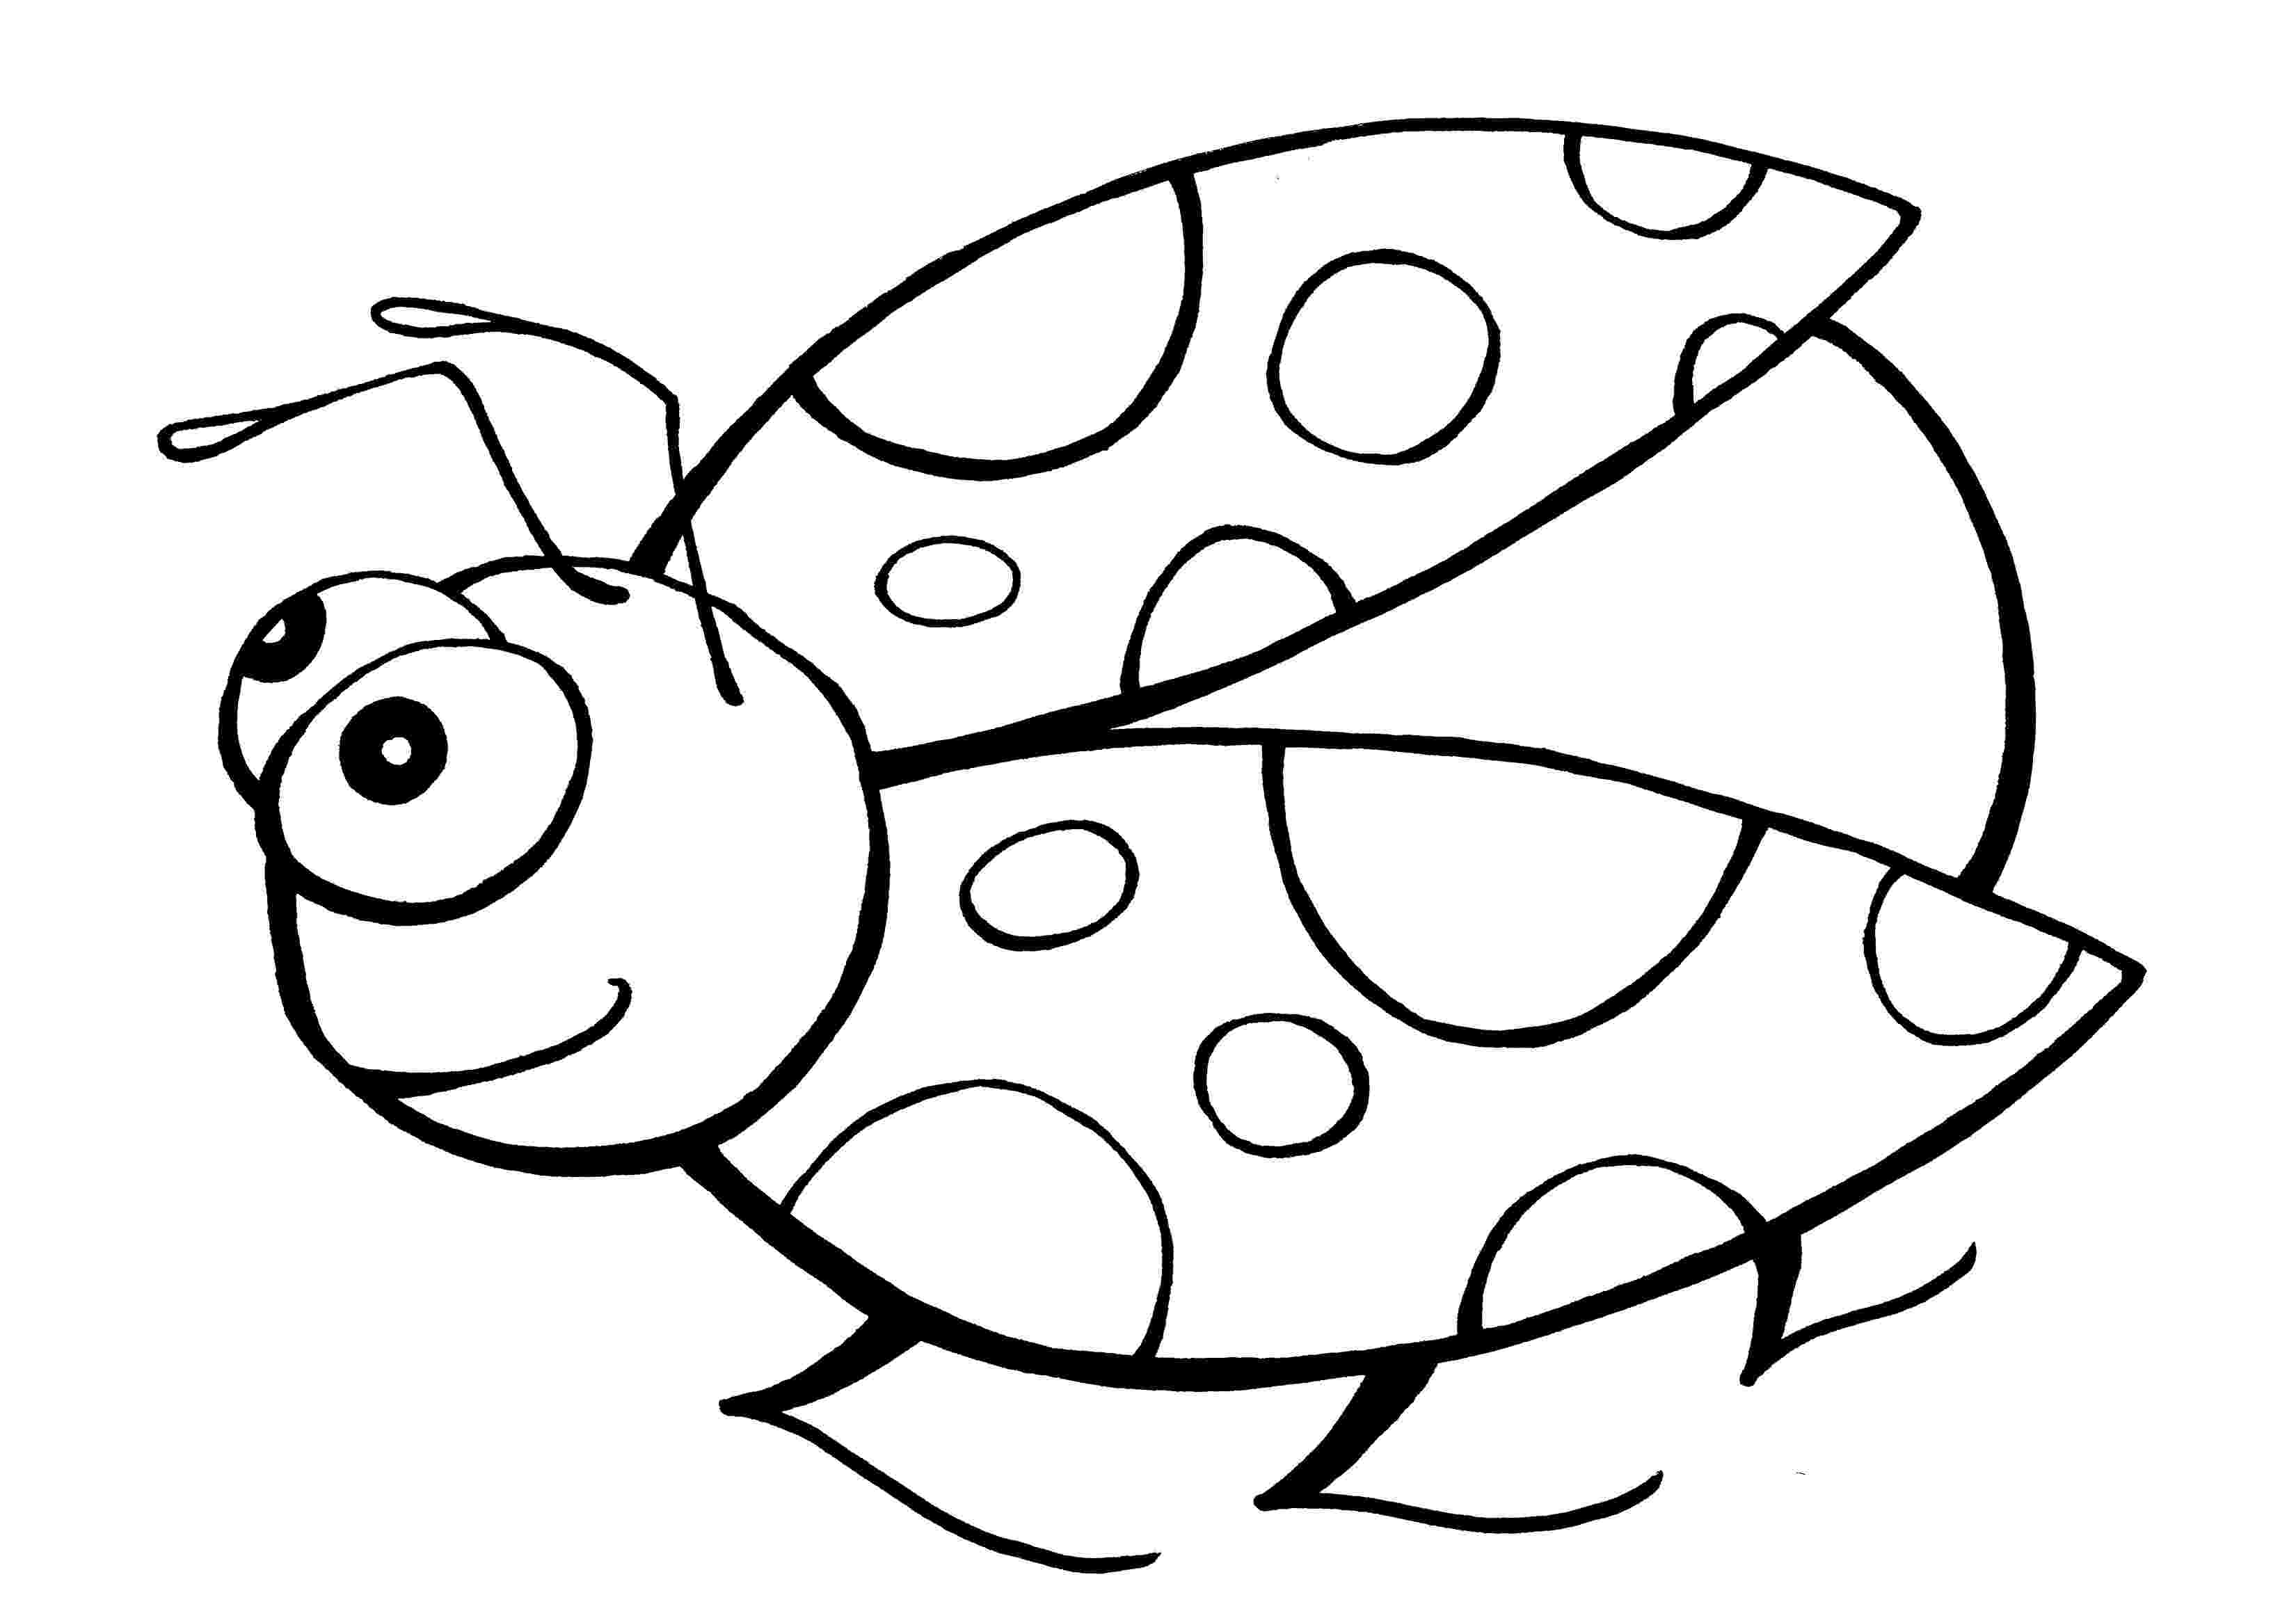 ladybird colouring page ladybug coloring pages to download and print for free colouring ladybird page